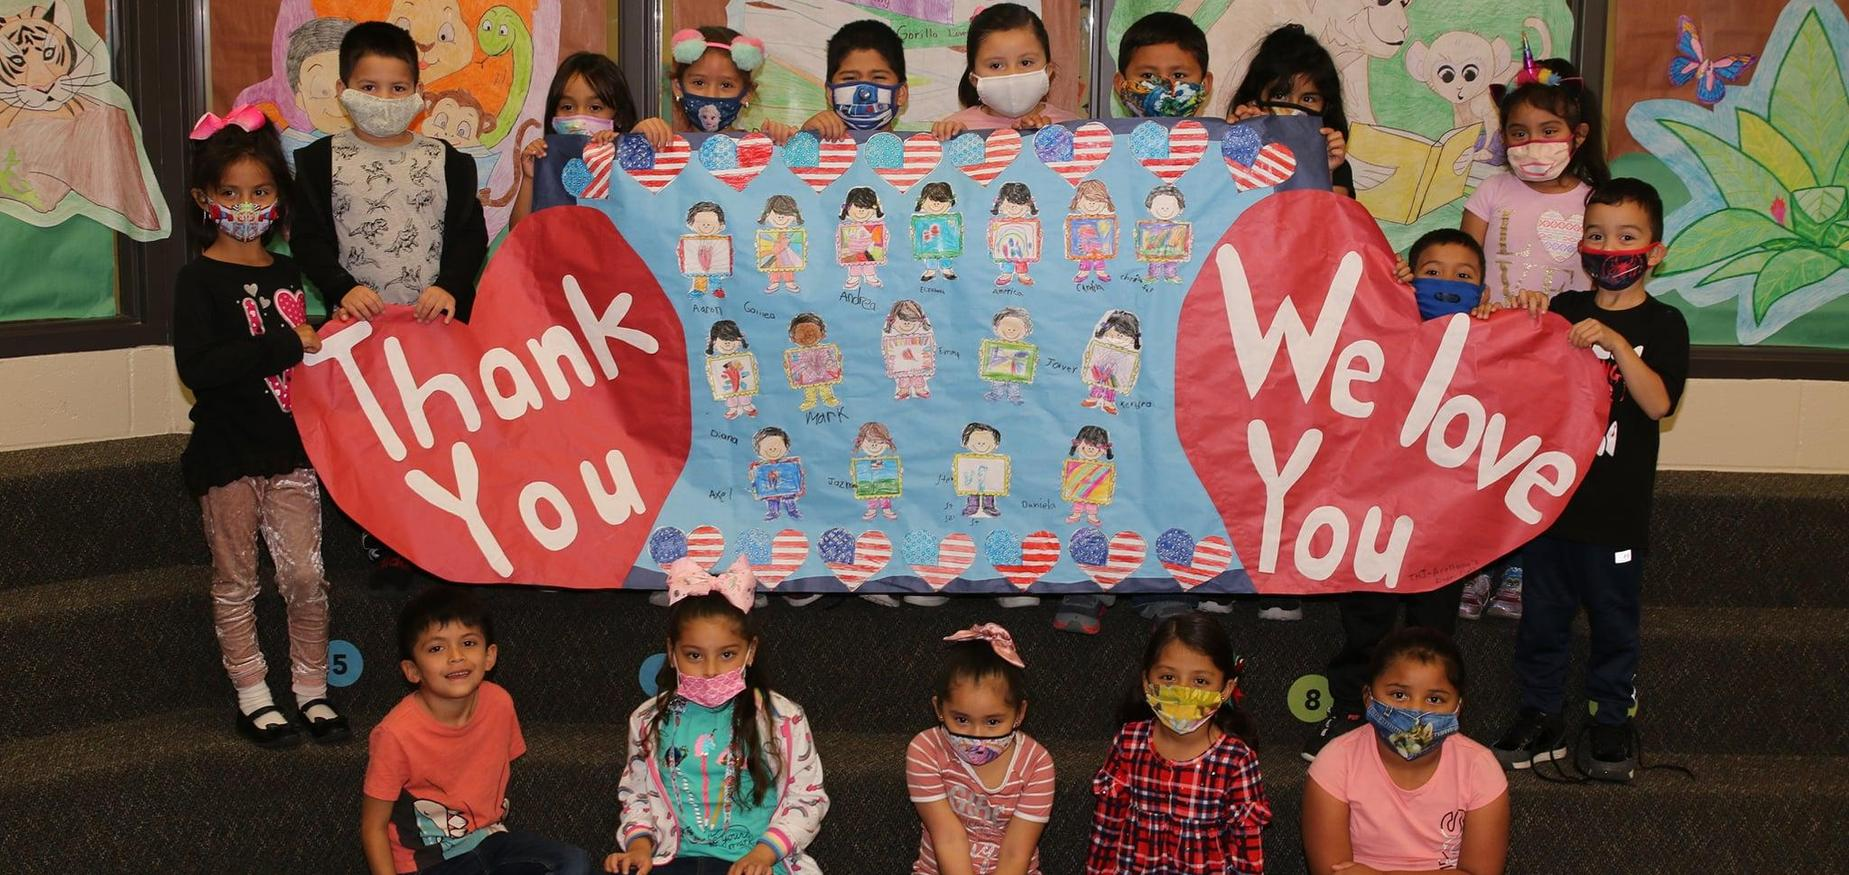 Students hold up thank you sign